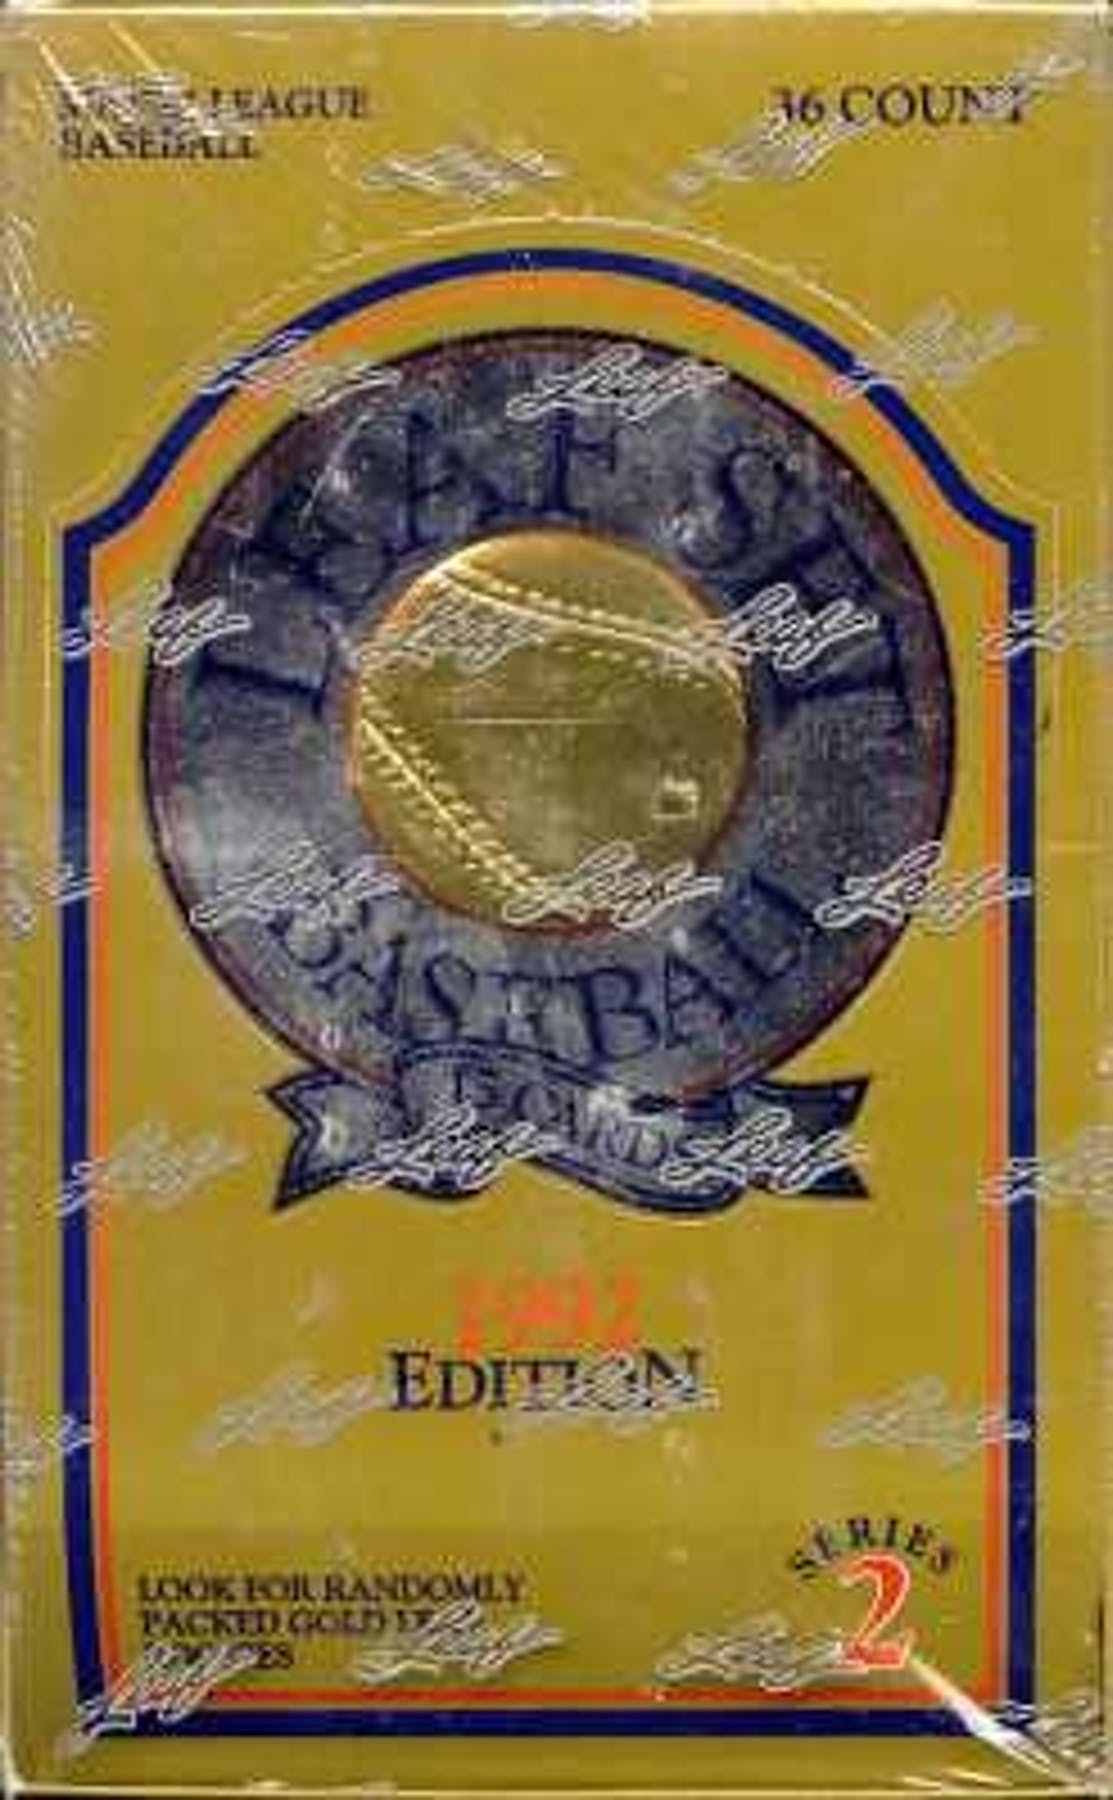 1992 Leaf Series 2 Baseball Wax Box Da Card World